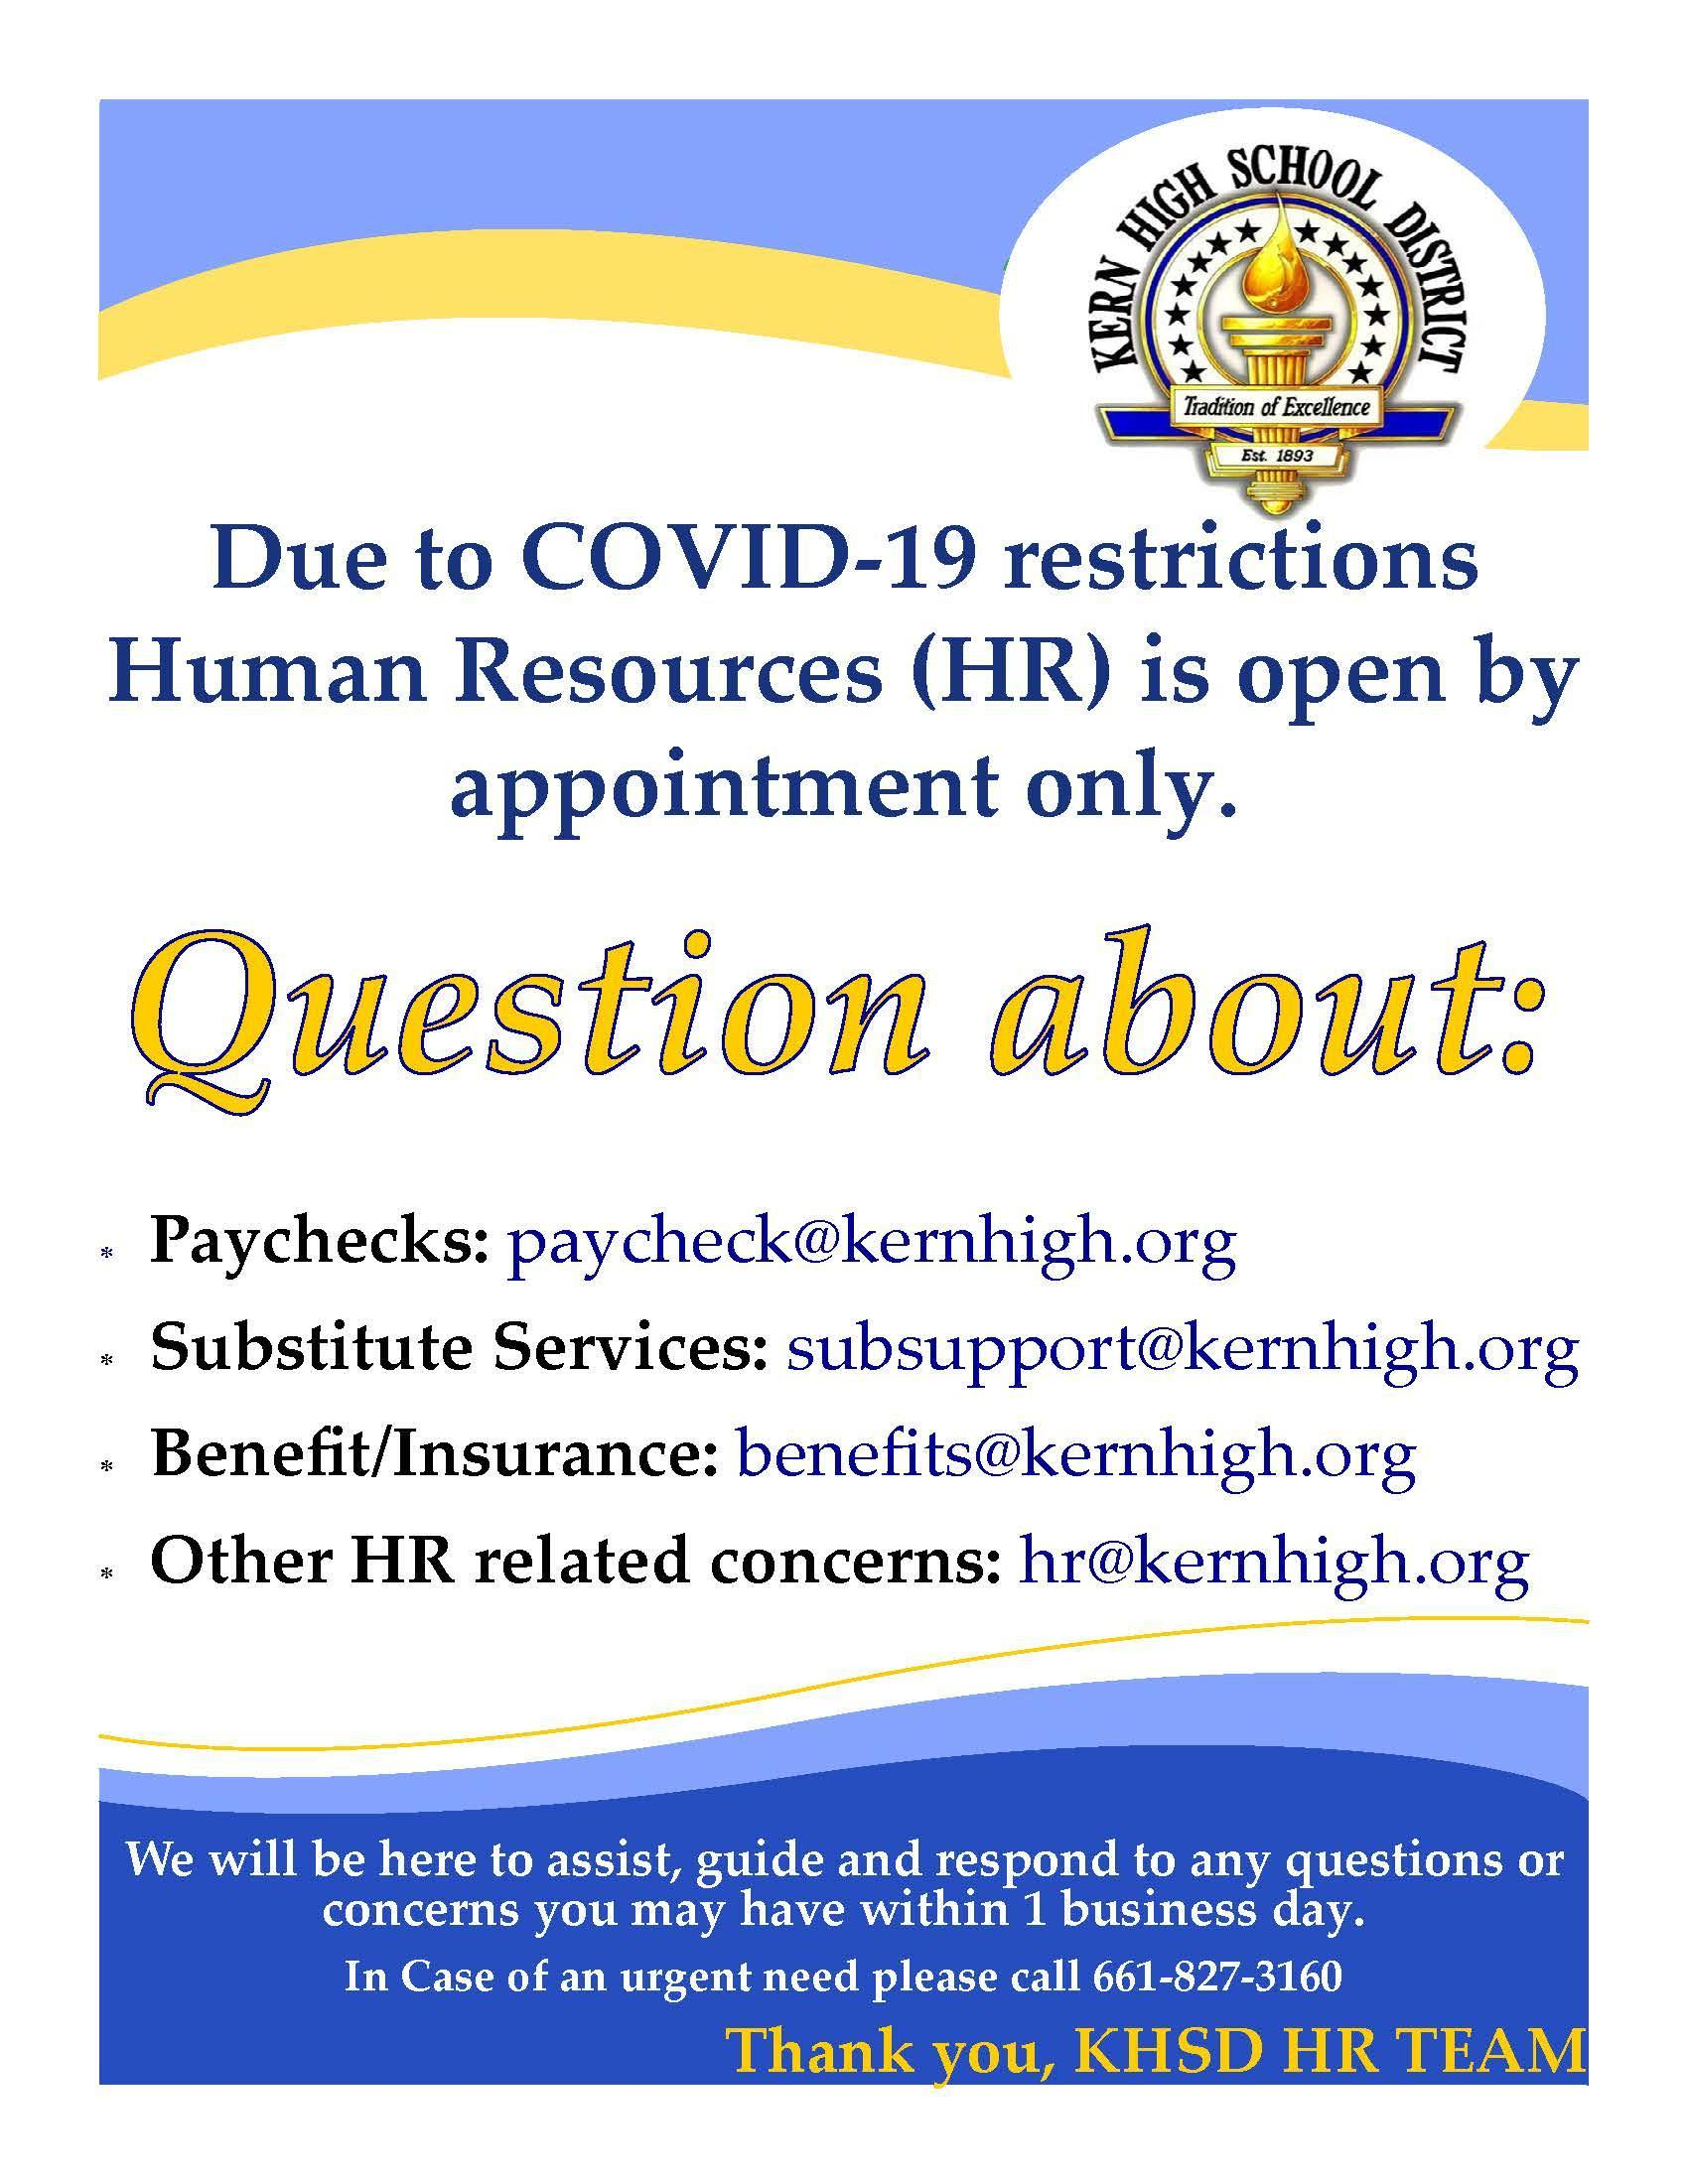 HR Appointment Notice and Contact